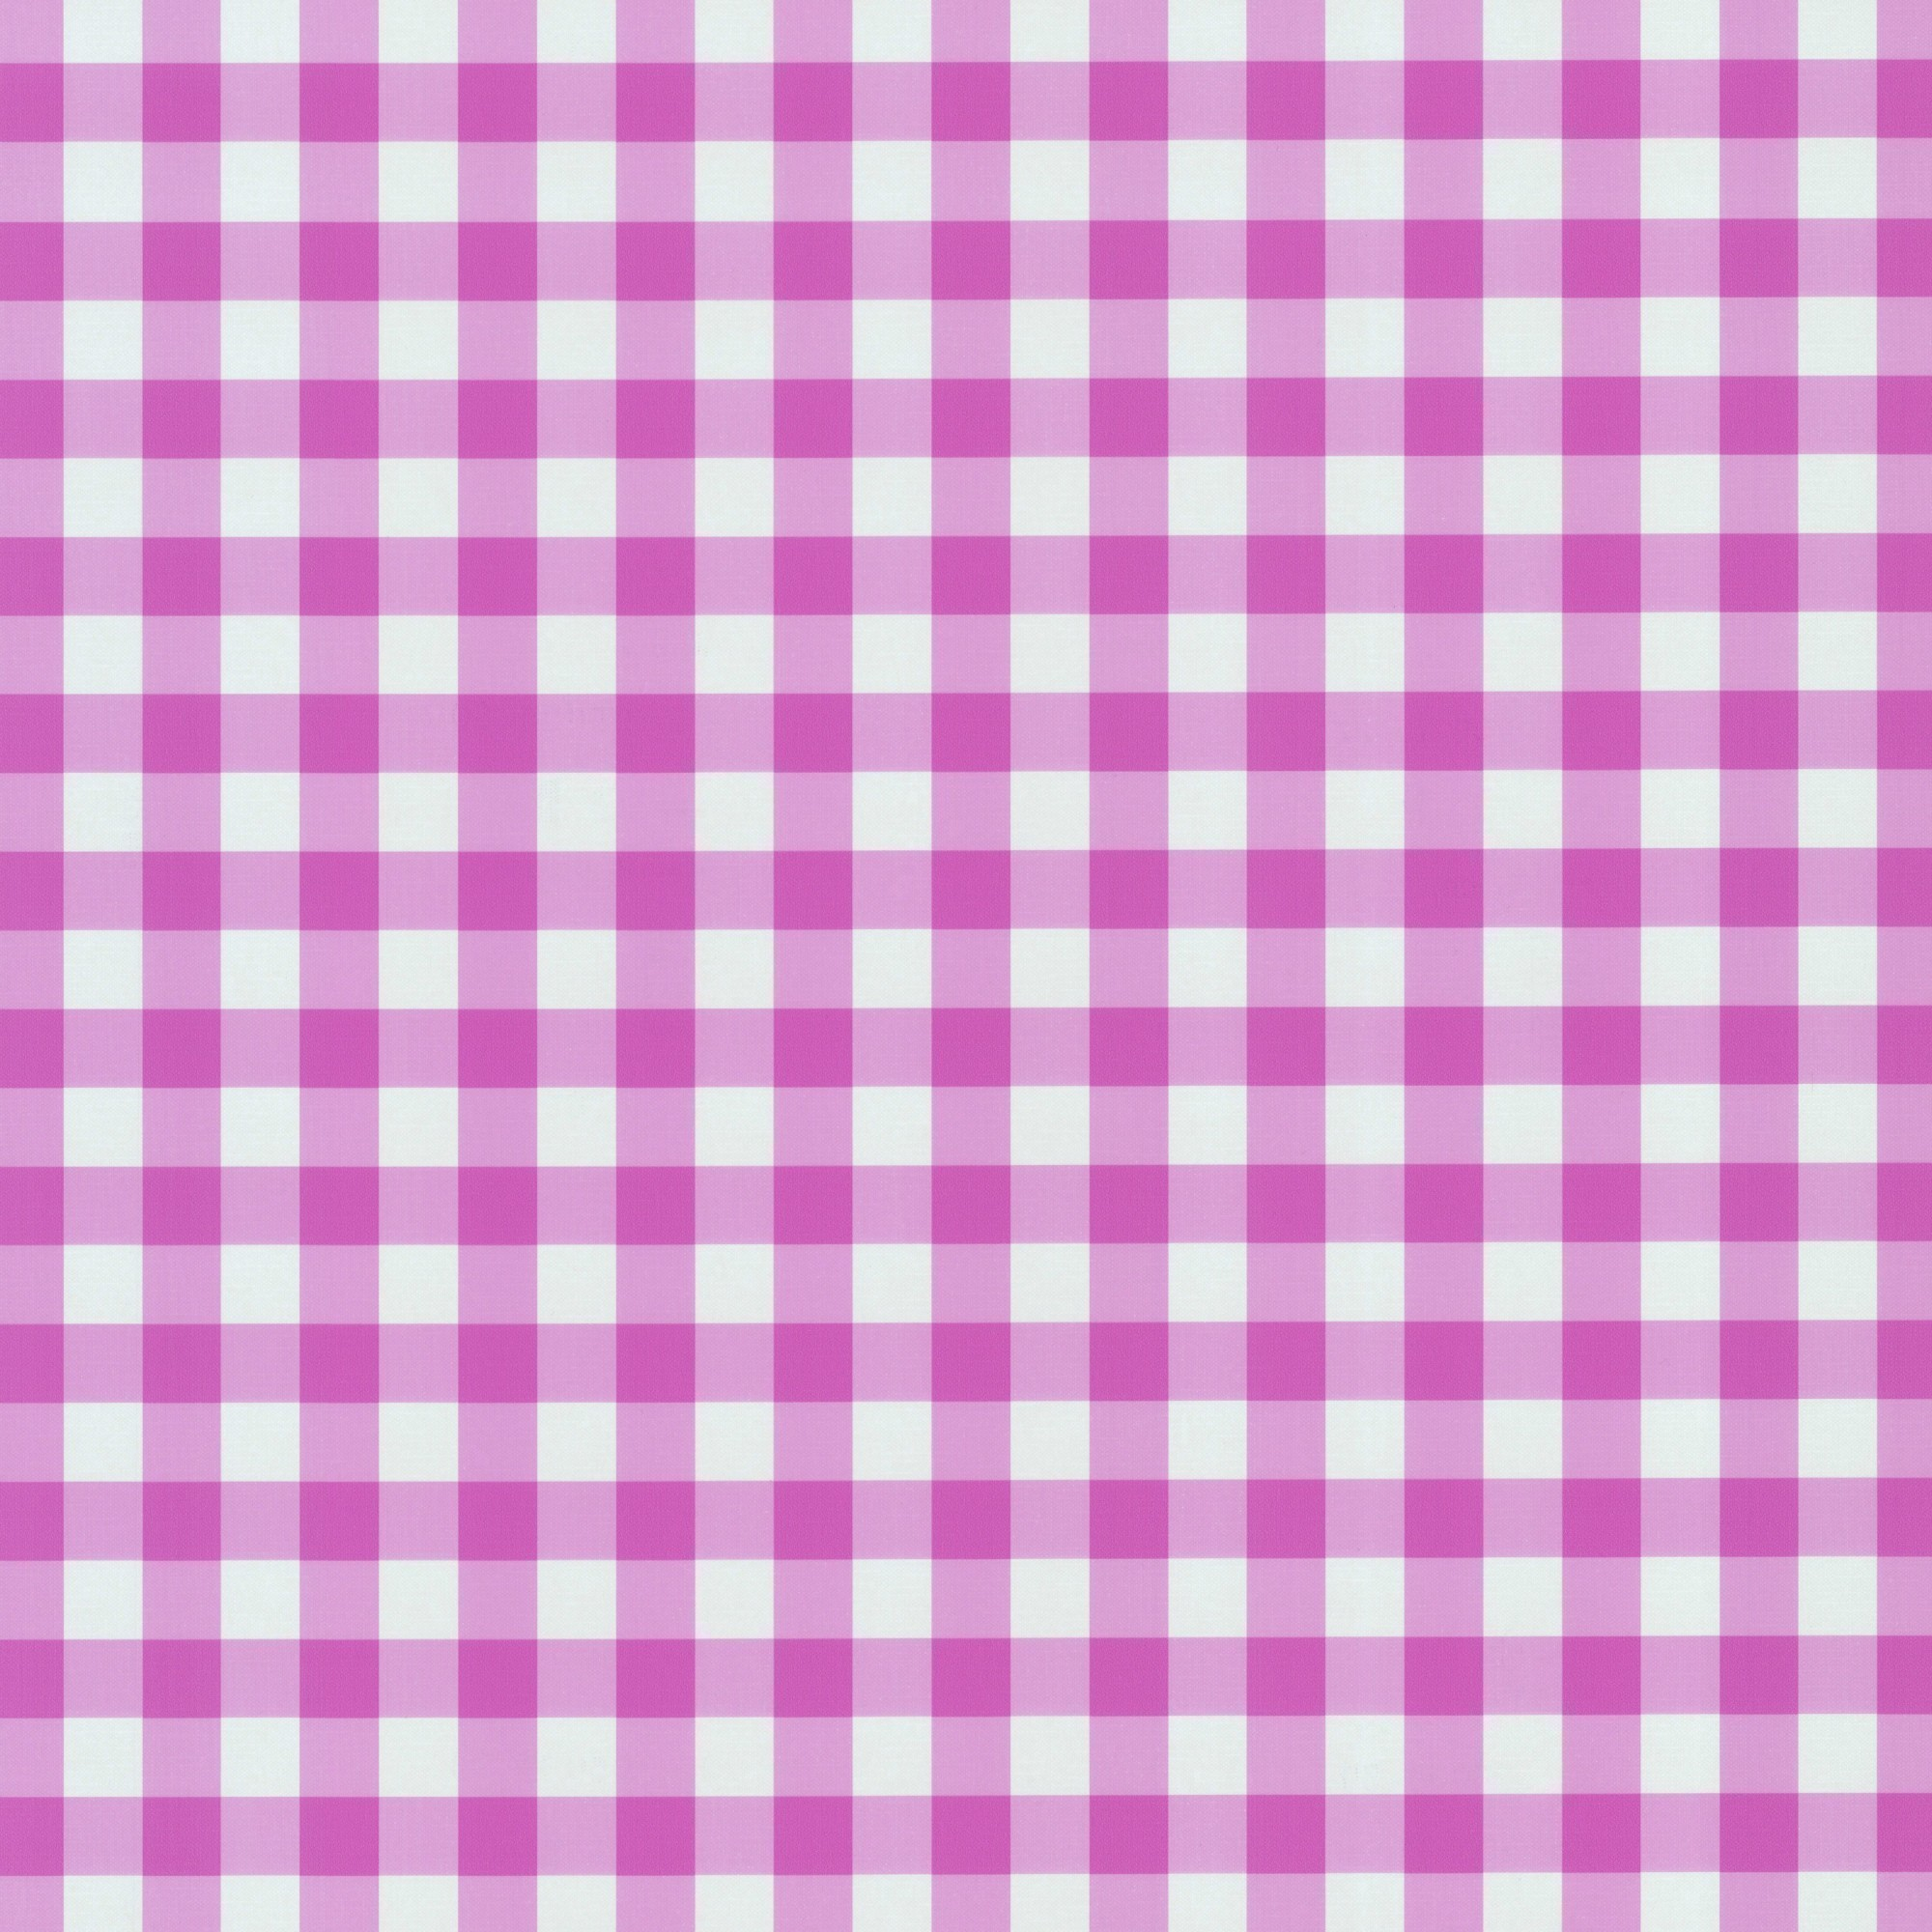 2000x2000 Playground Bright Pink Gingham Check Wallpaper by P+S International 05638-30